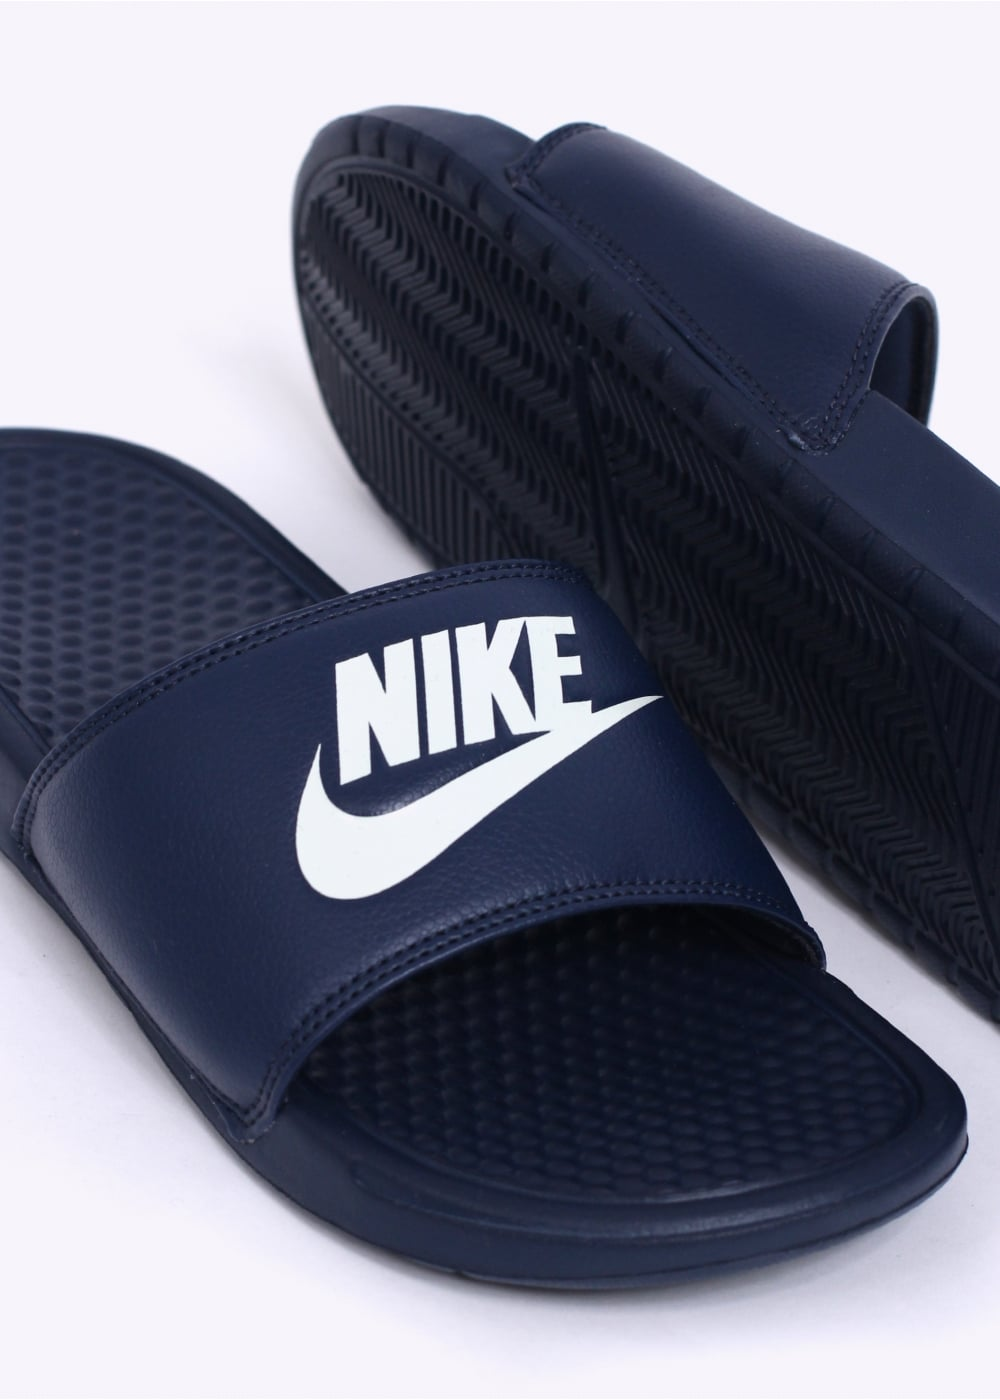 Nike Navy Blue Womens Shoes